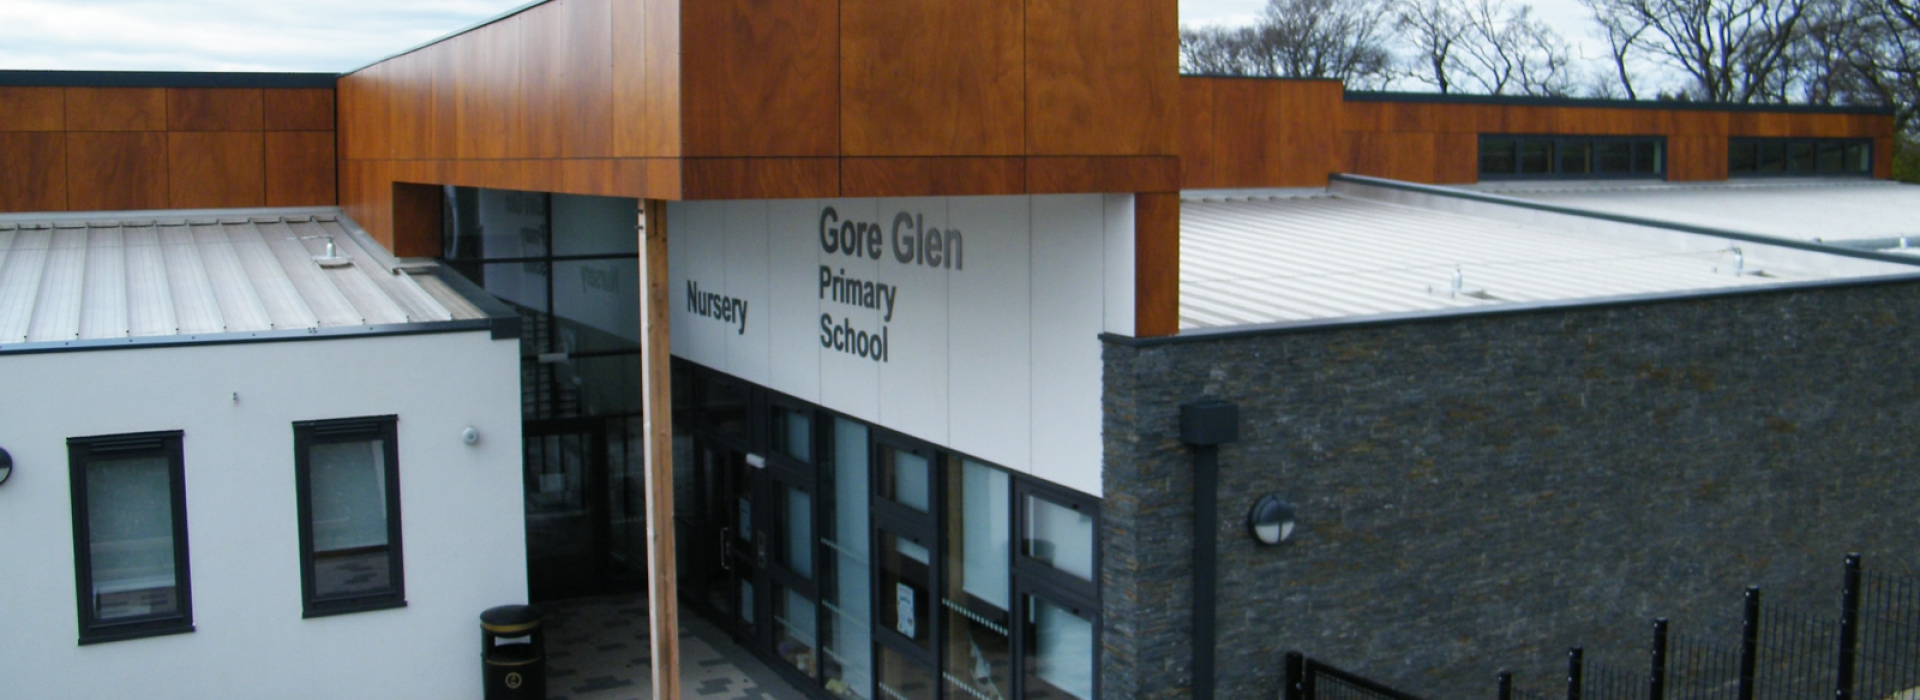 Gore Glen Primary School Main Entrance